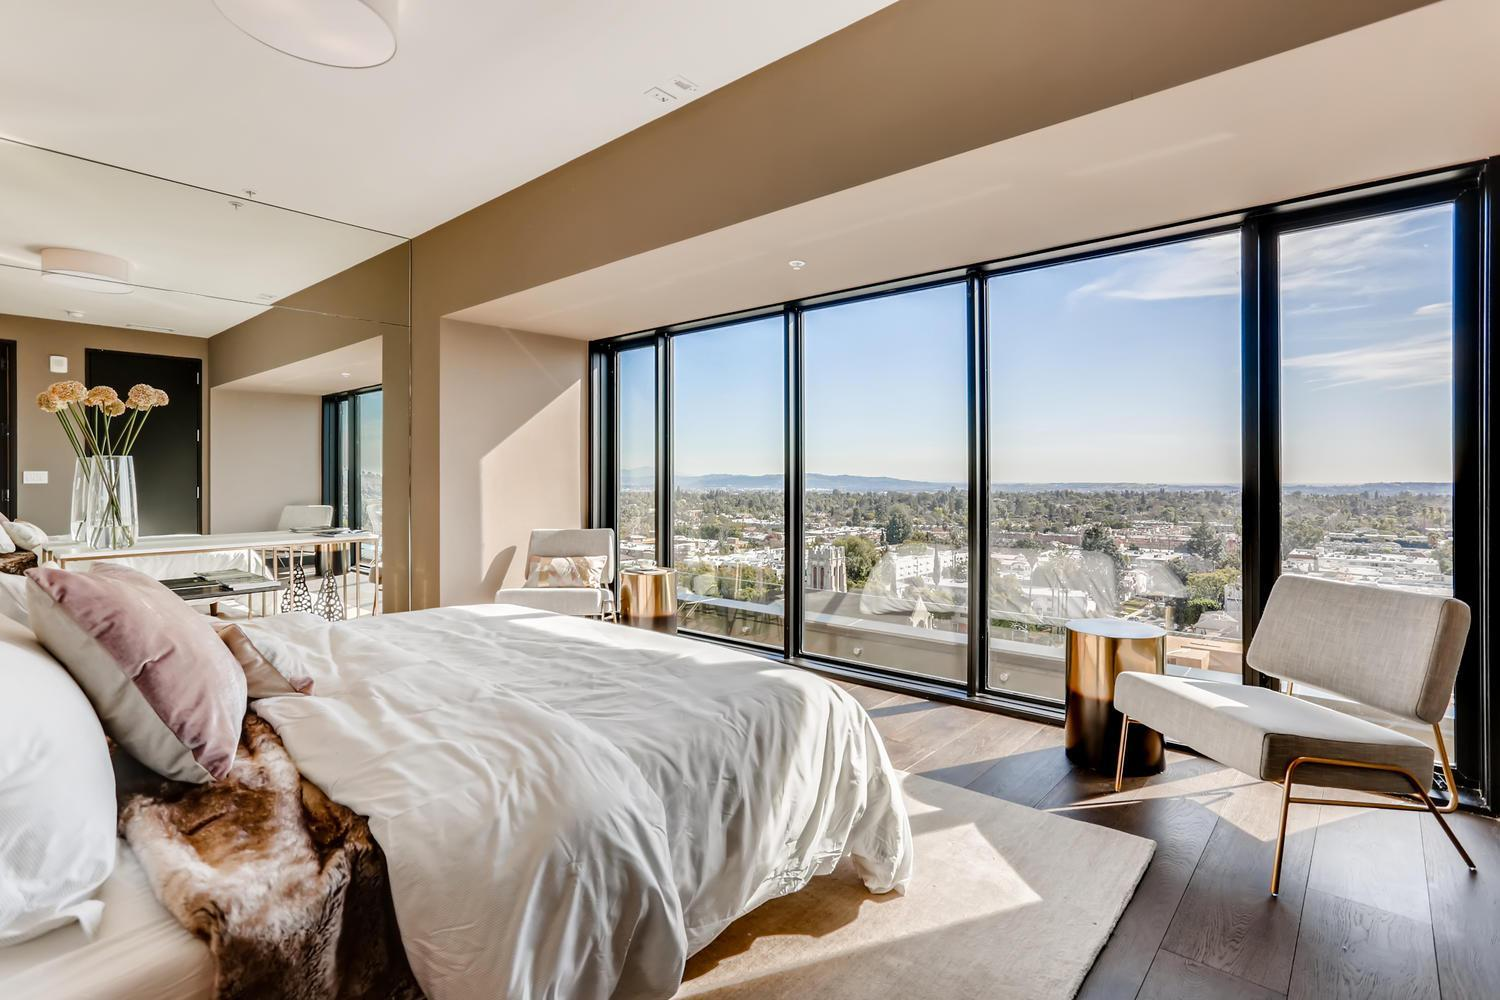 Bedroom featured in the Penthouse 6 By Adept Urban  in Los Angeles, CA